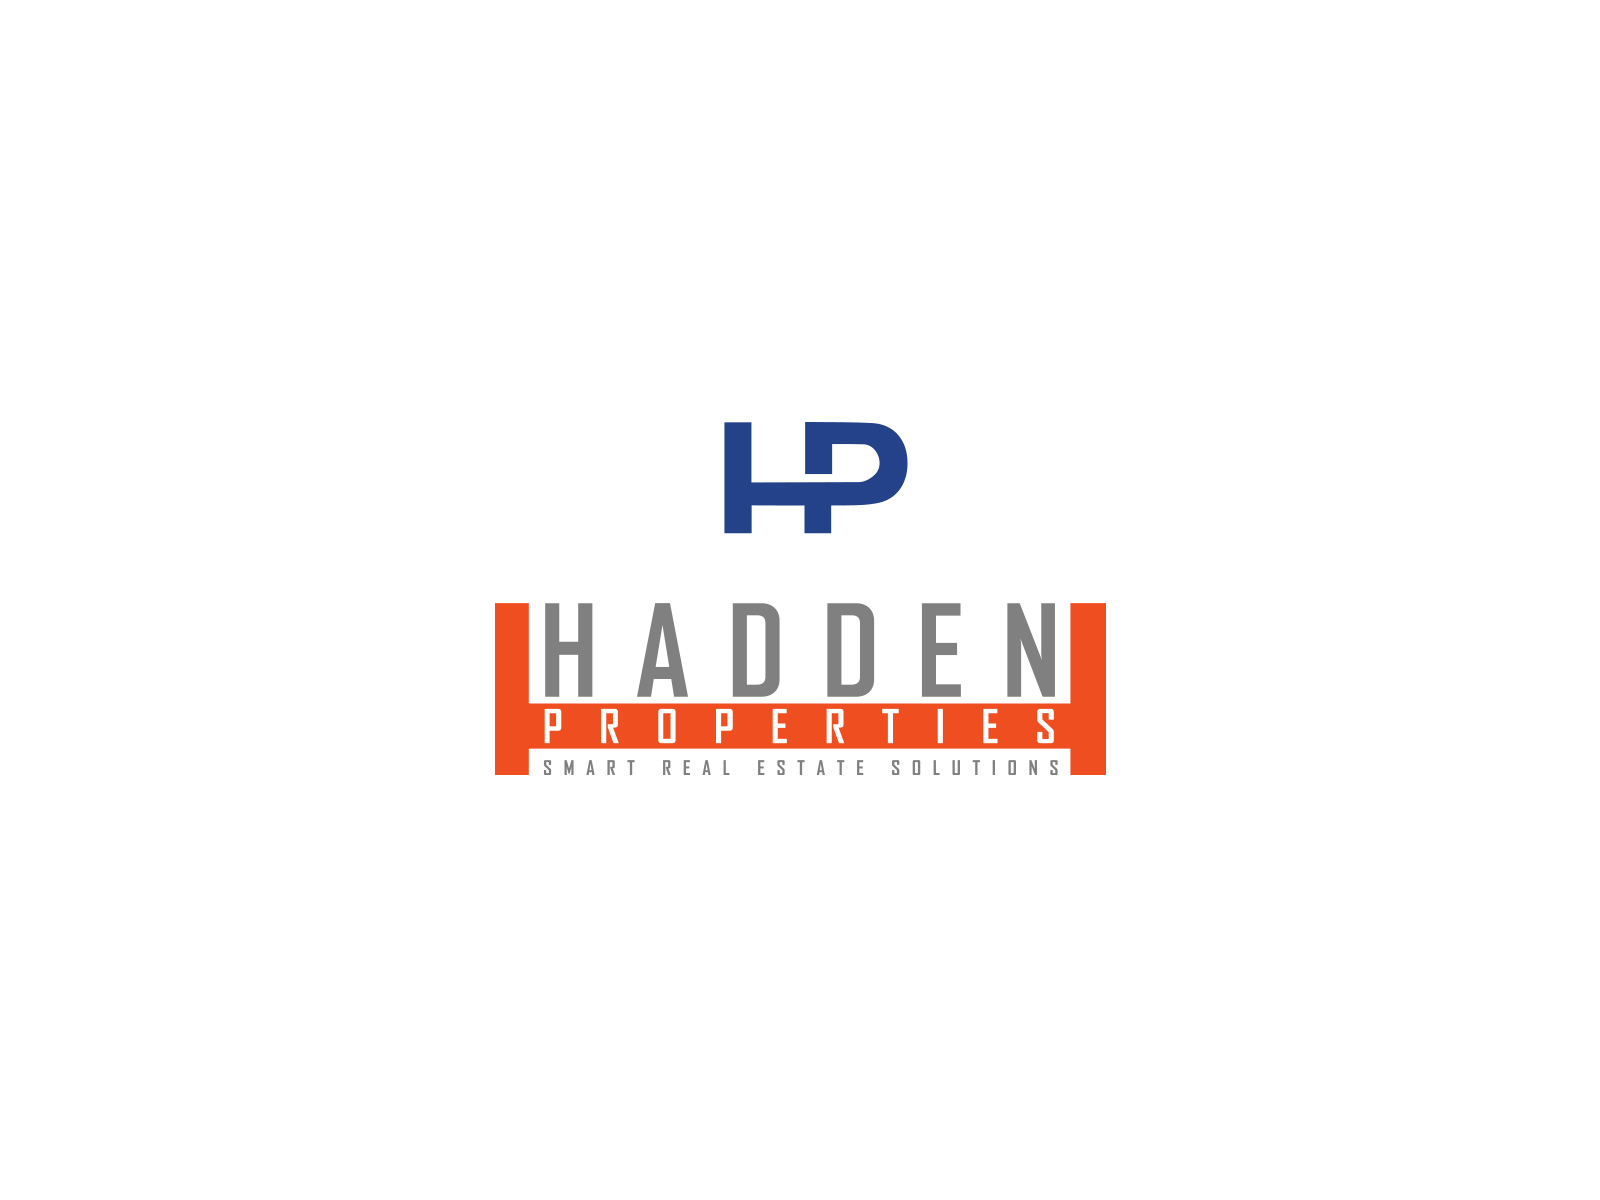 Logo Design by olii - Entry No. 158 in the Logo Design Contest Artistic Logo Design for Hadden Properties.